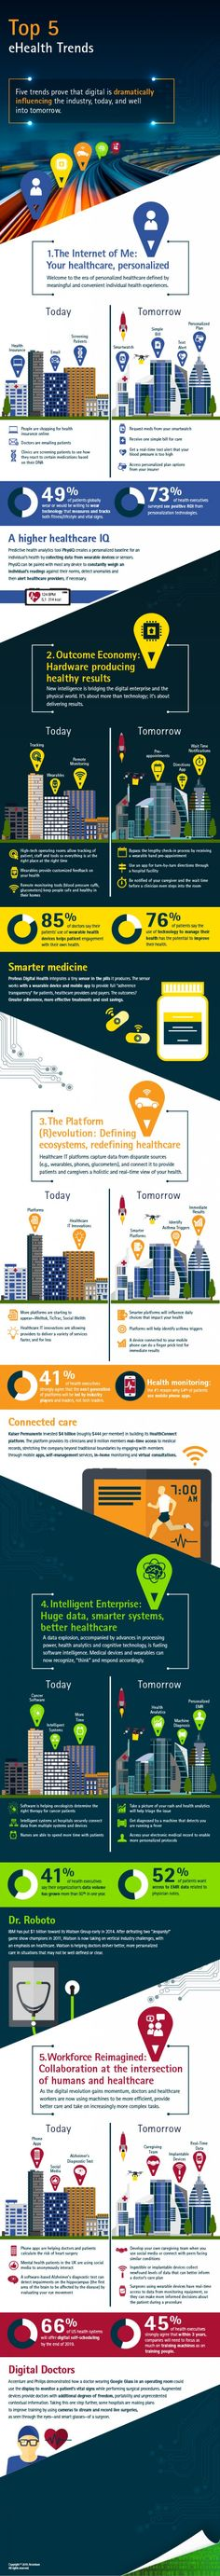 Healthcare_Technology_Vision_2015_Infographic